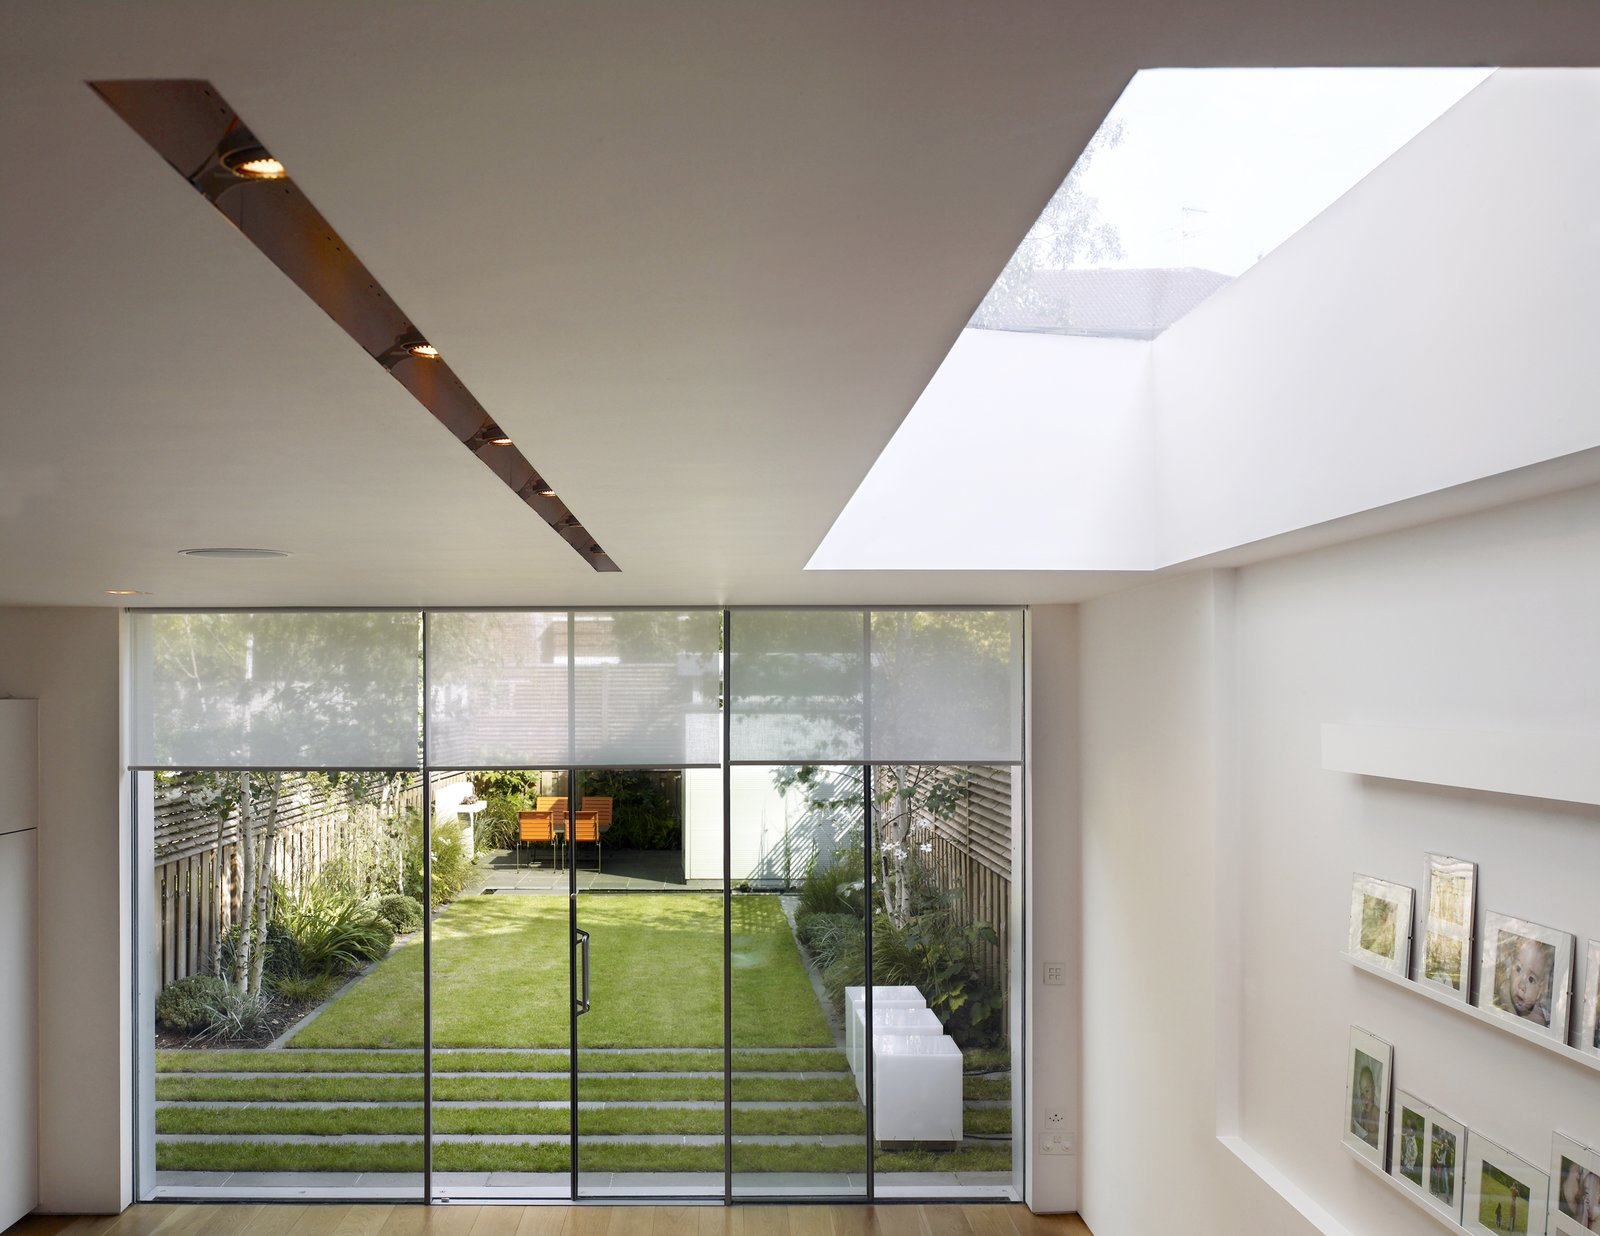 Tagged: Windows and Sliding Window Type. Elm Grove by Thompson + Baroni